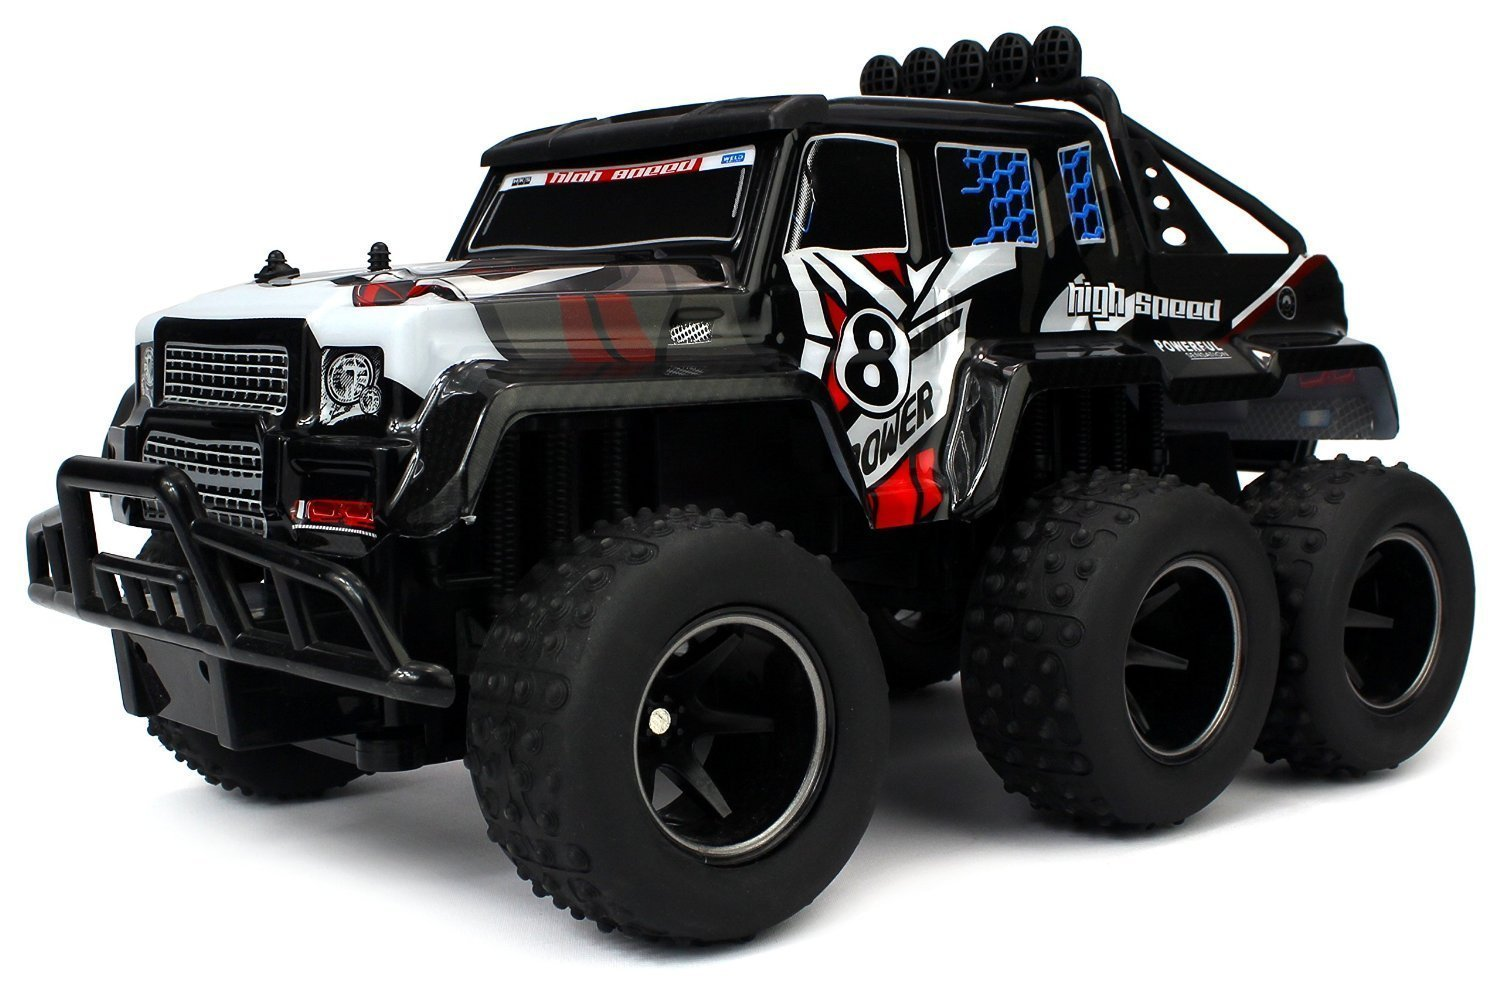 Speed Wagon 6X6 Remote Control RC High Performance Truck, 2.4 GHz Control System, Big Scale 1:10 Size Ready To... by Velocity Toys